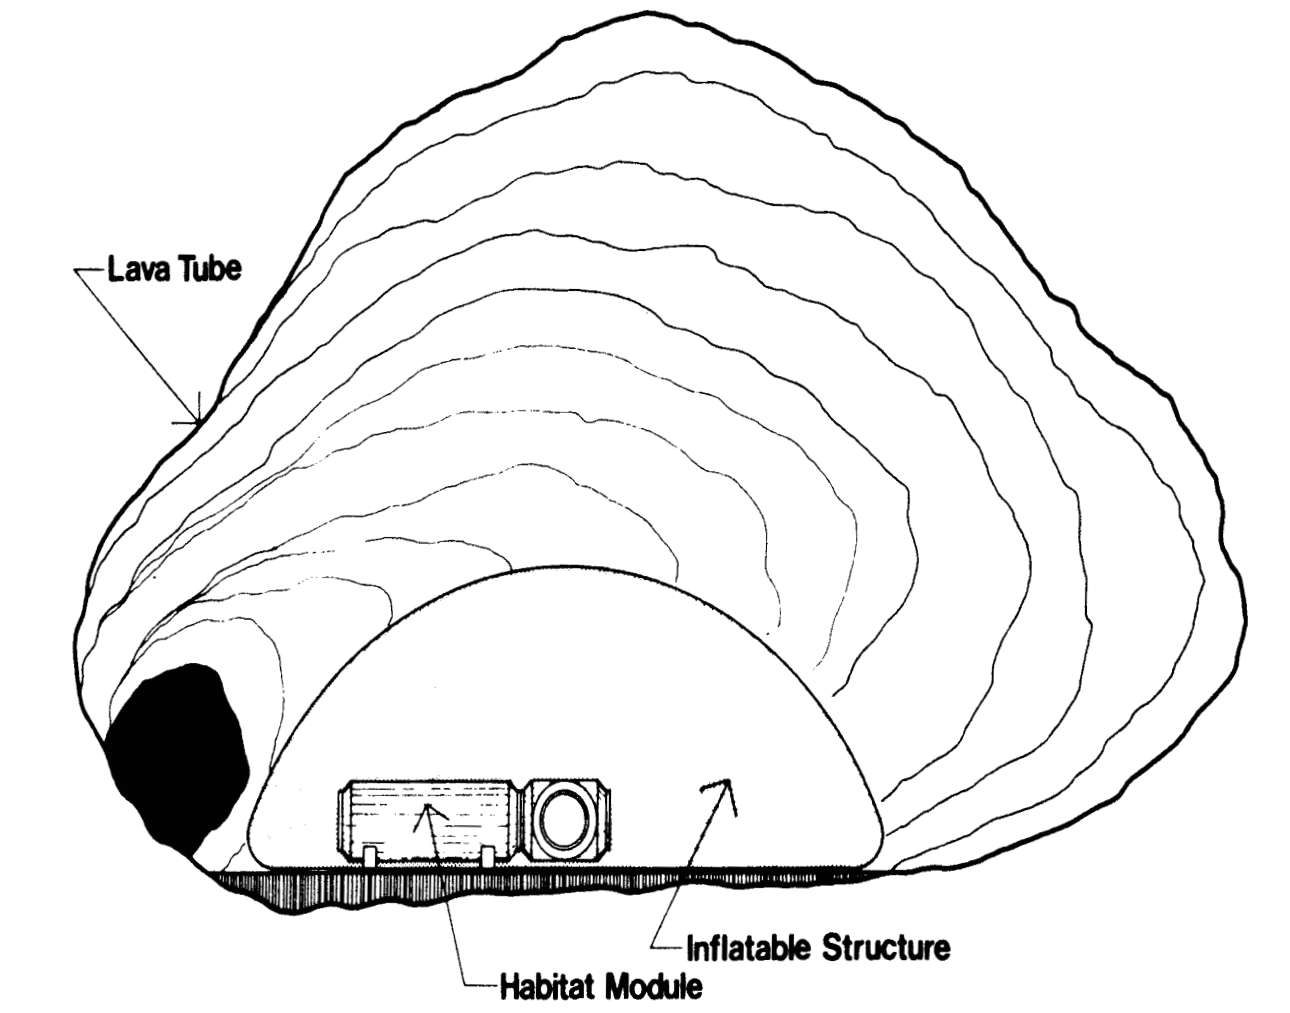 A cross-section of an inflatable structure and habitat within an unpressurized lunar lava tube. Lava tubes on the Moon can protect habits from radiation, meteorites, and extreme temperature changes. Credit: Angelis et al., 2002, Figure 1.